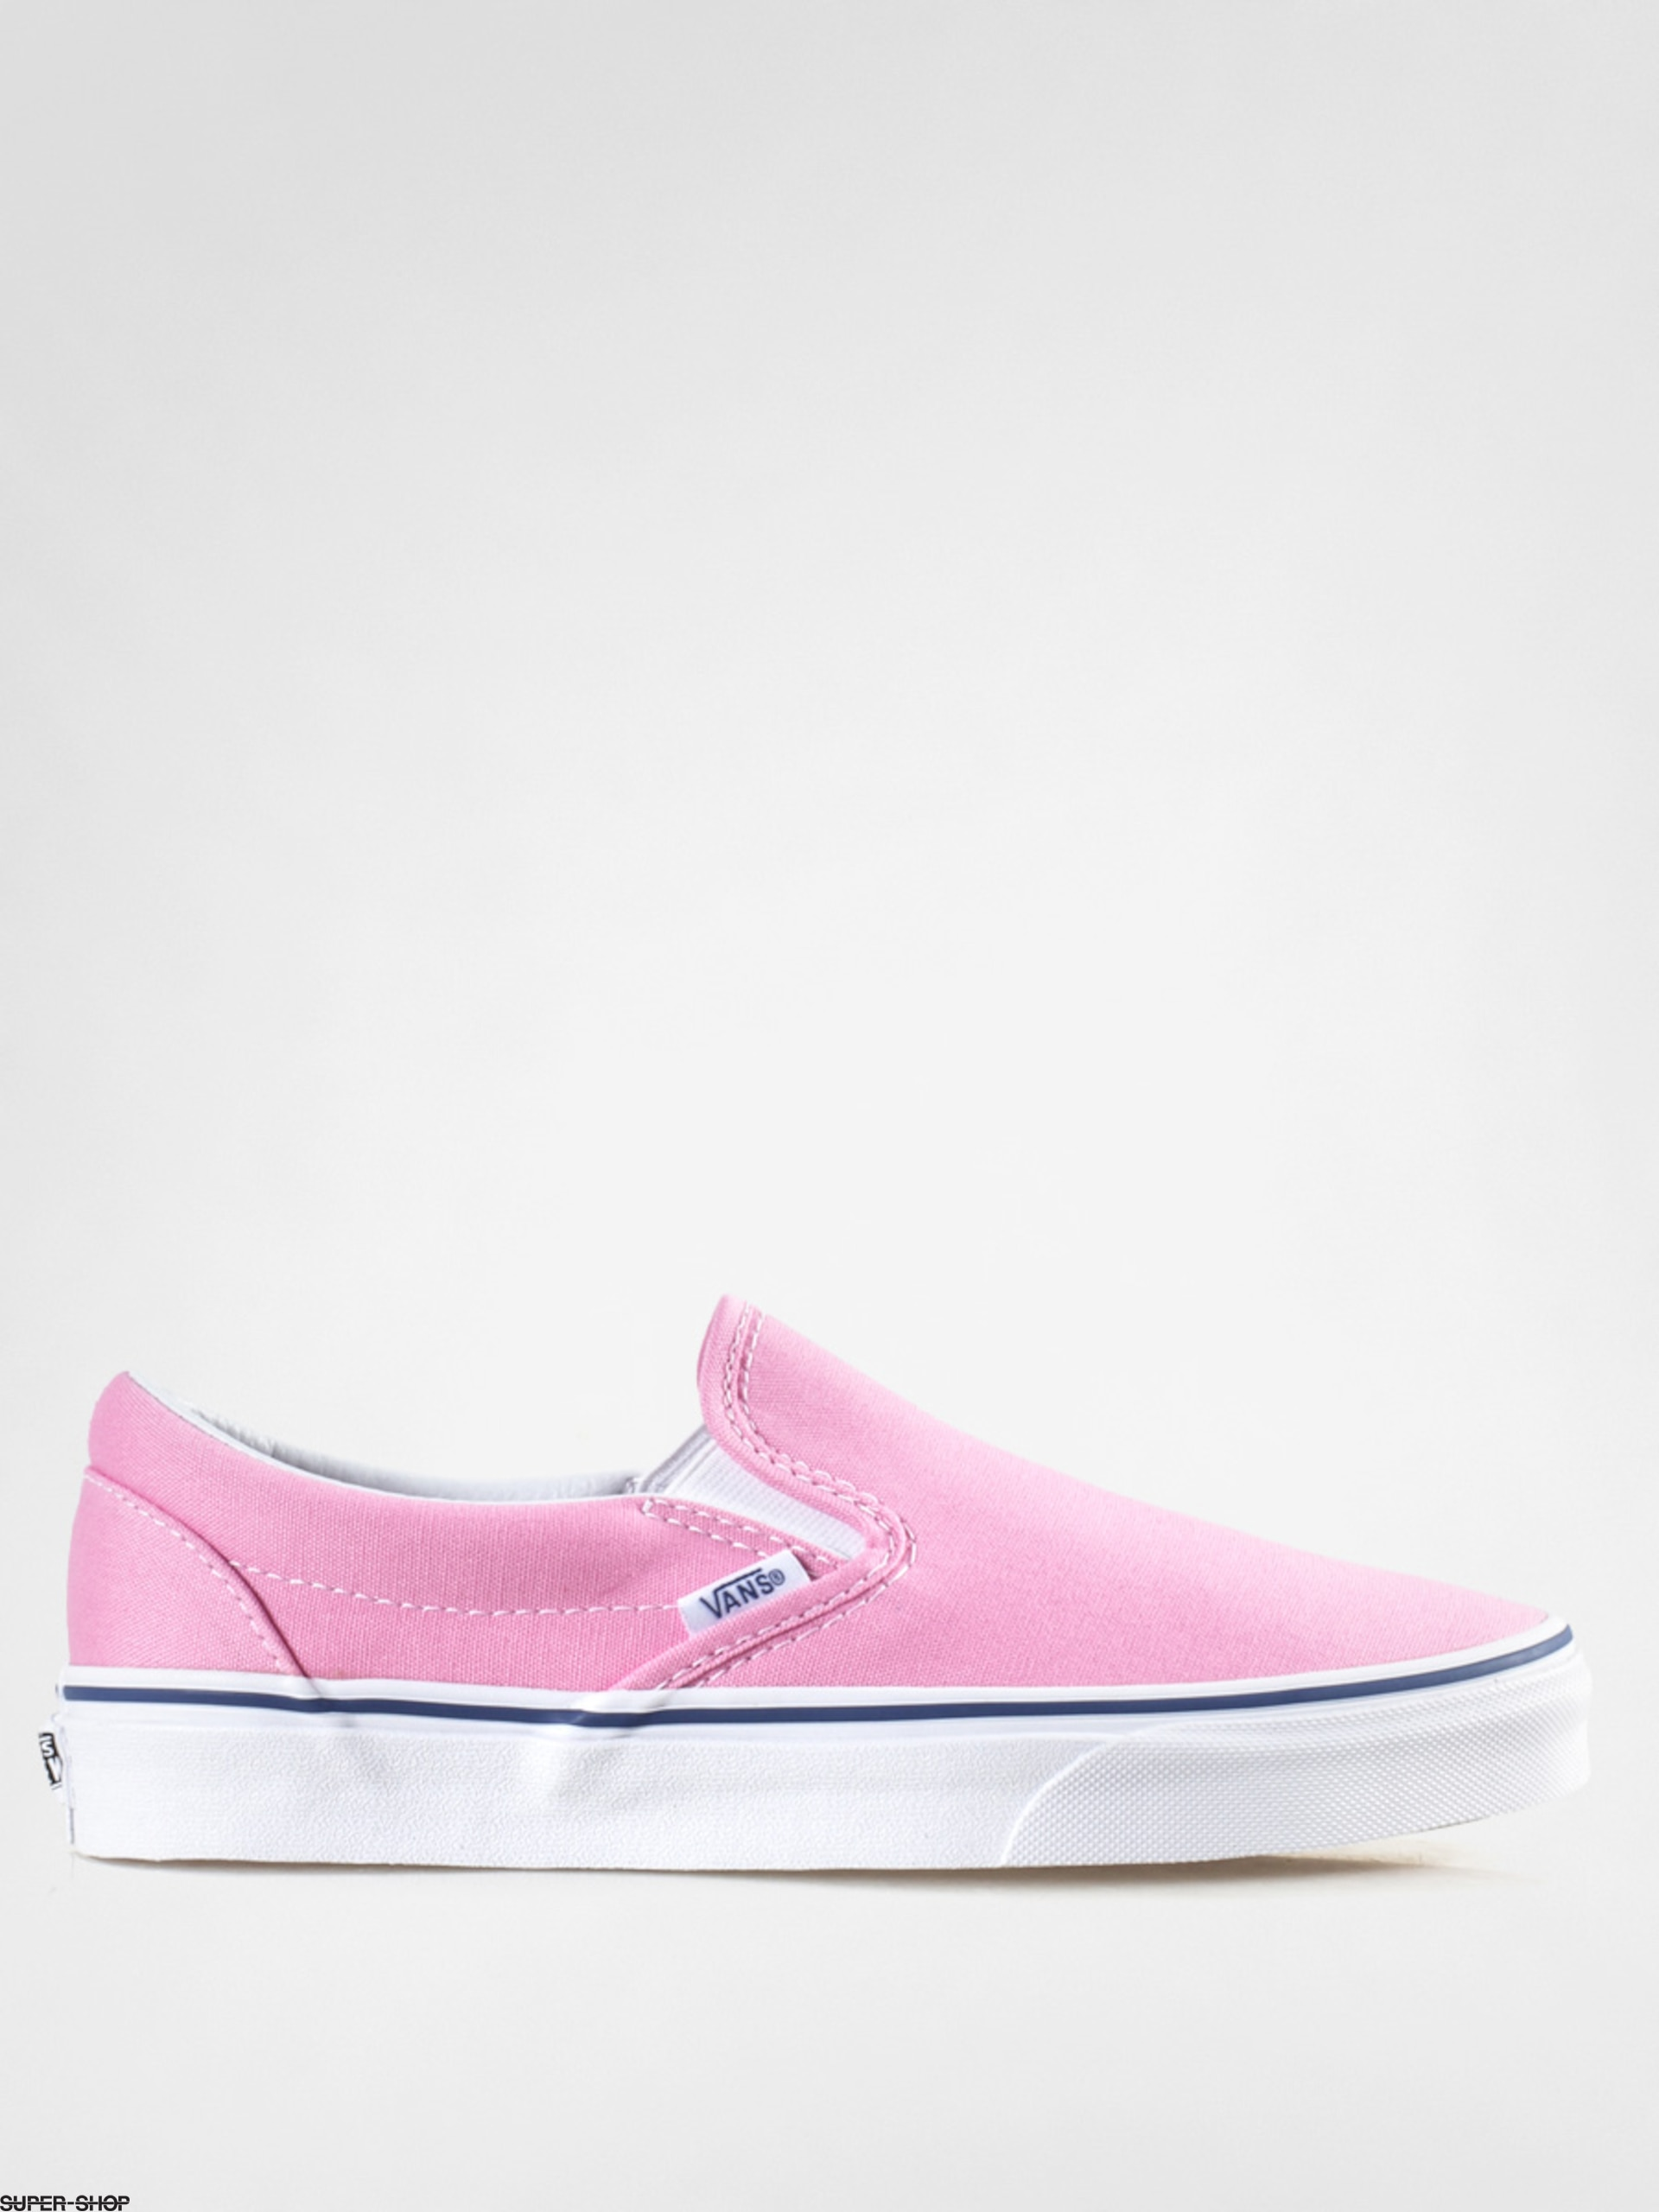 bcdad285a038 Vans Shoes Classic Slip On (prism pink true white)